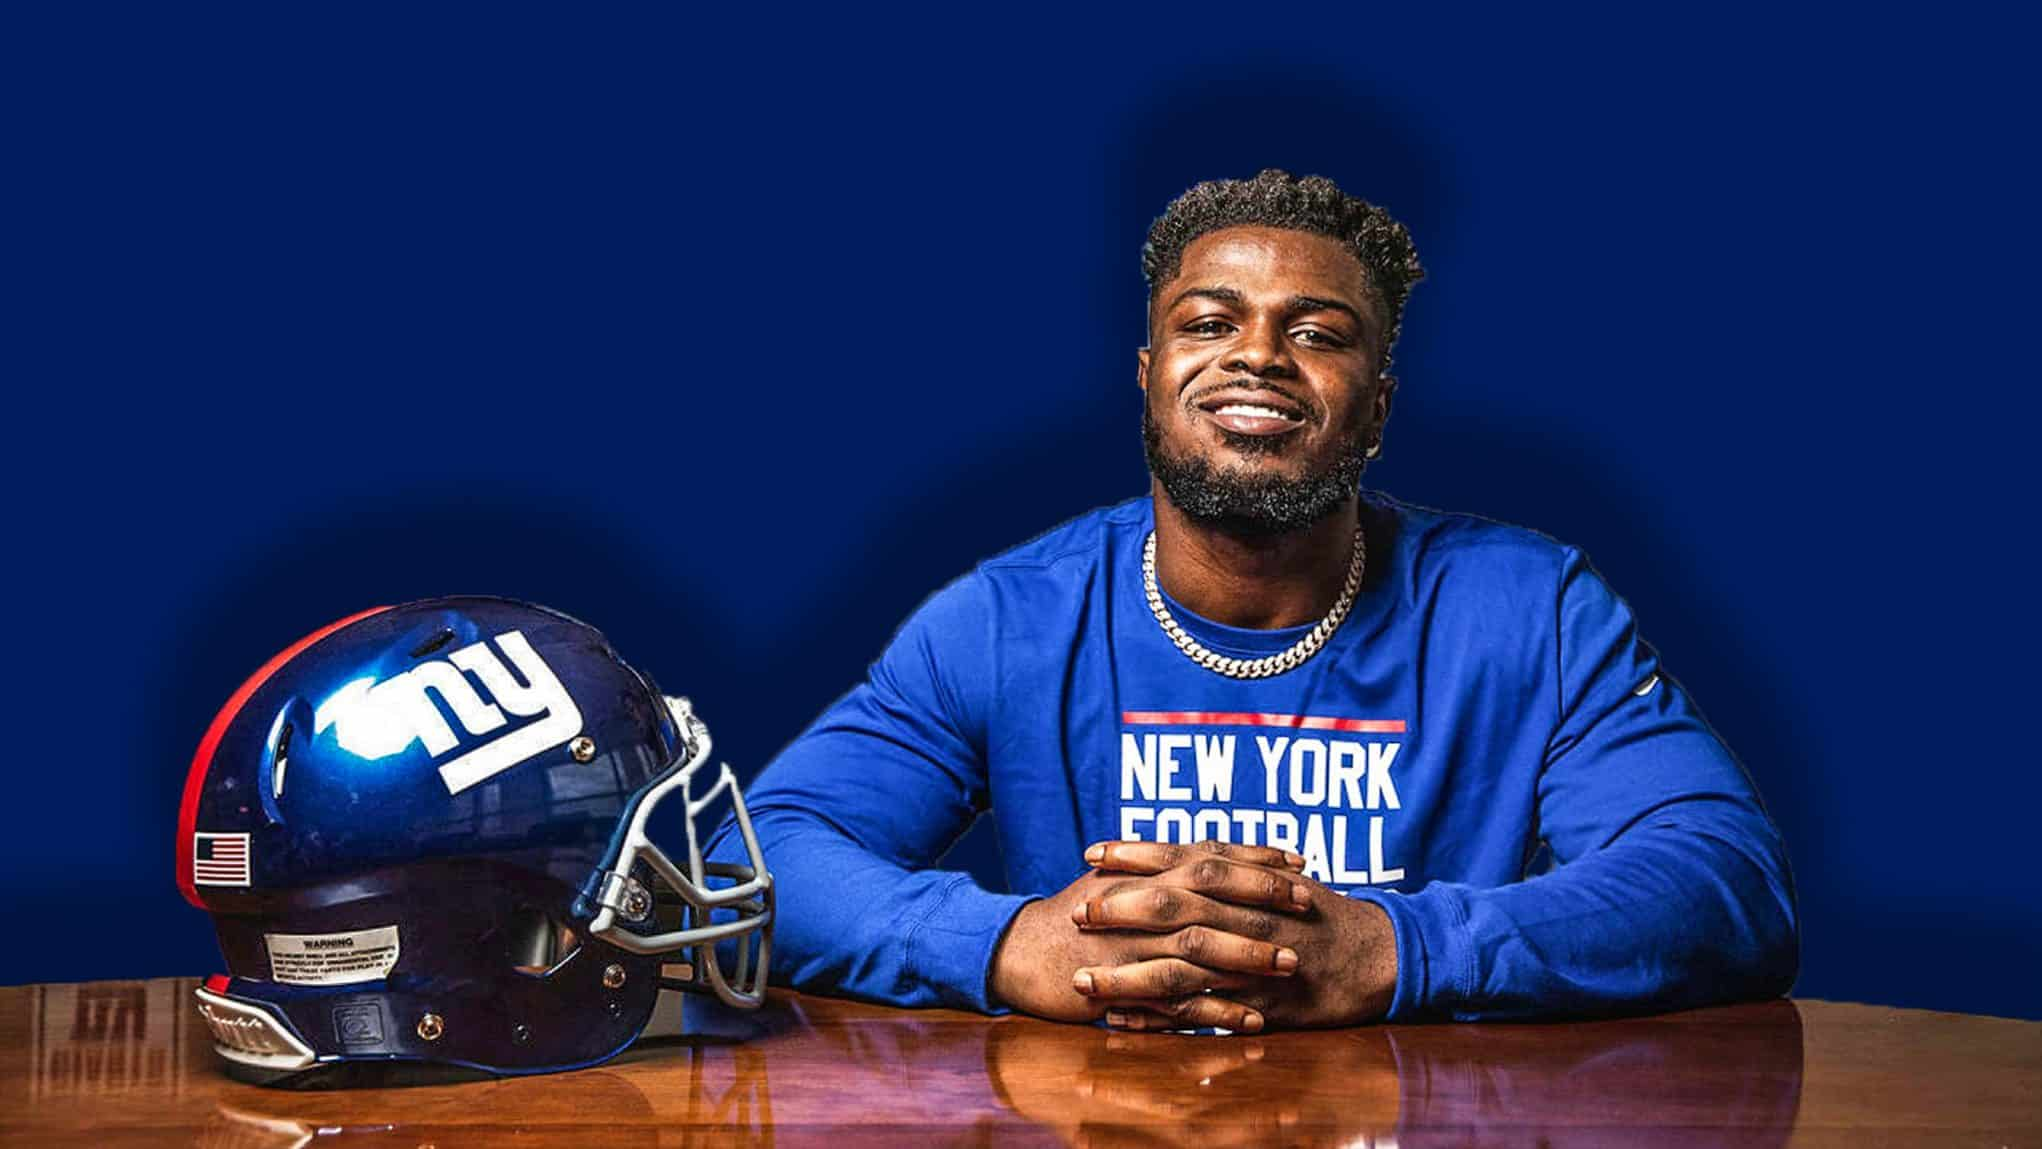 New York Giants Special Teams Looking To Build On Their Improvement